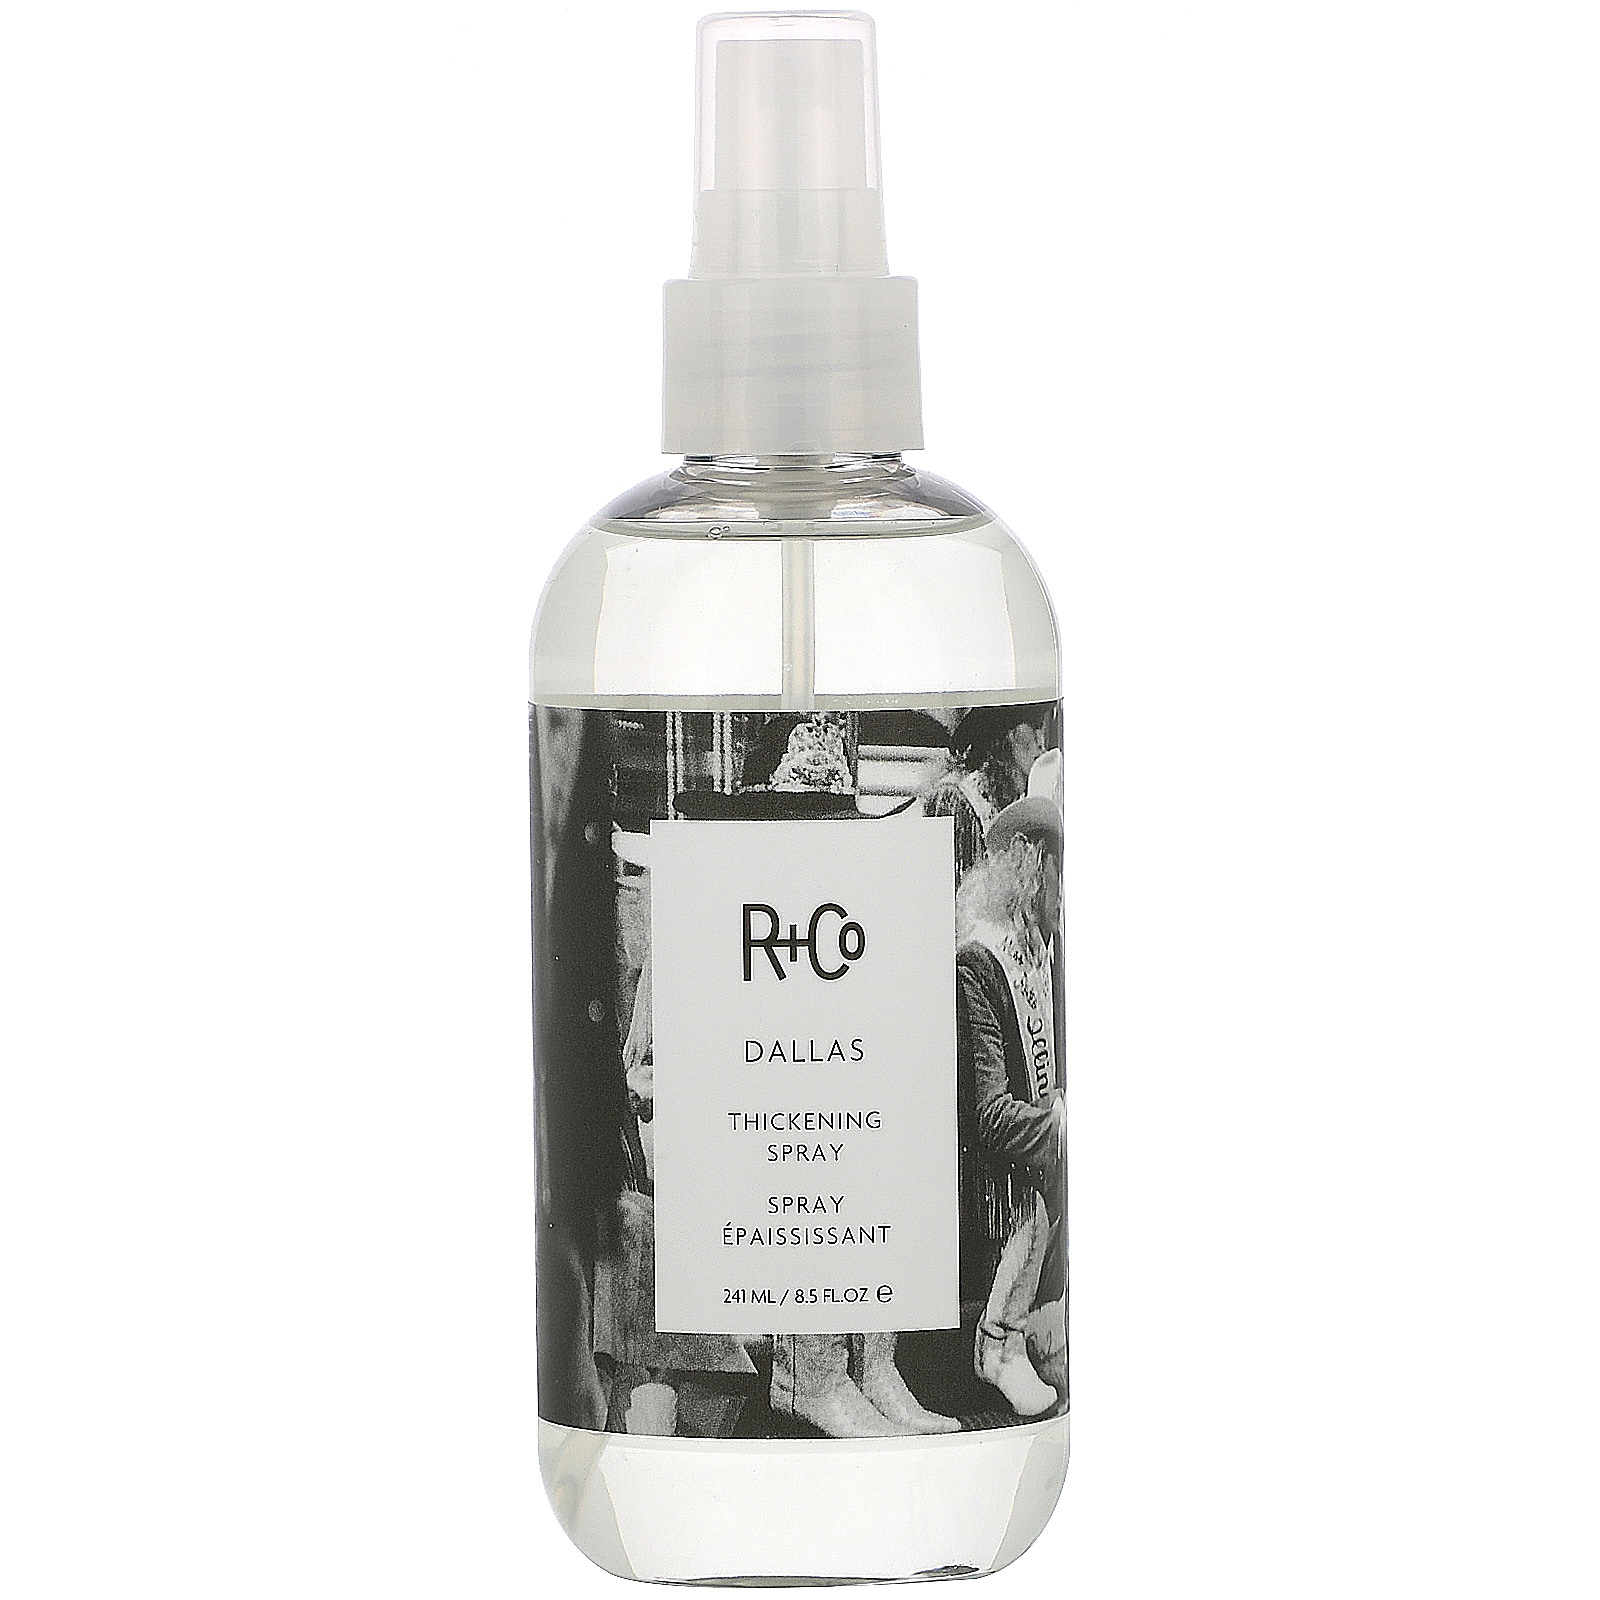 R+Co, Dallas, Thickening Spray, 8.5 fl oz (241 ml)